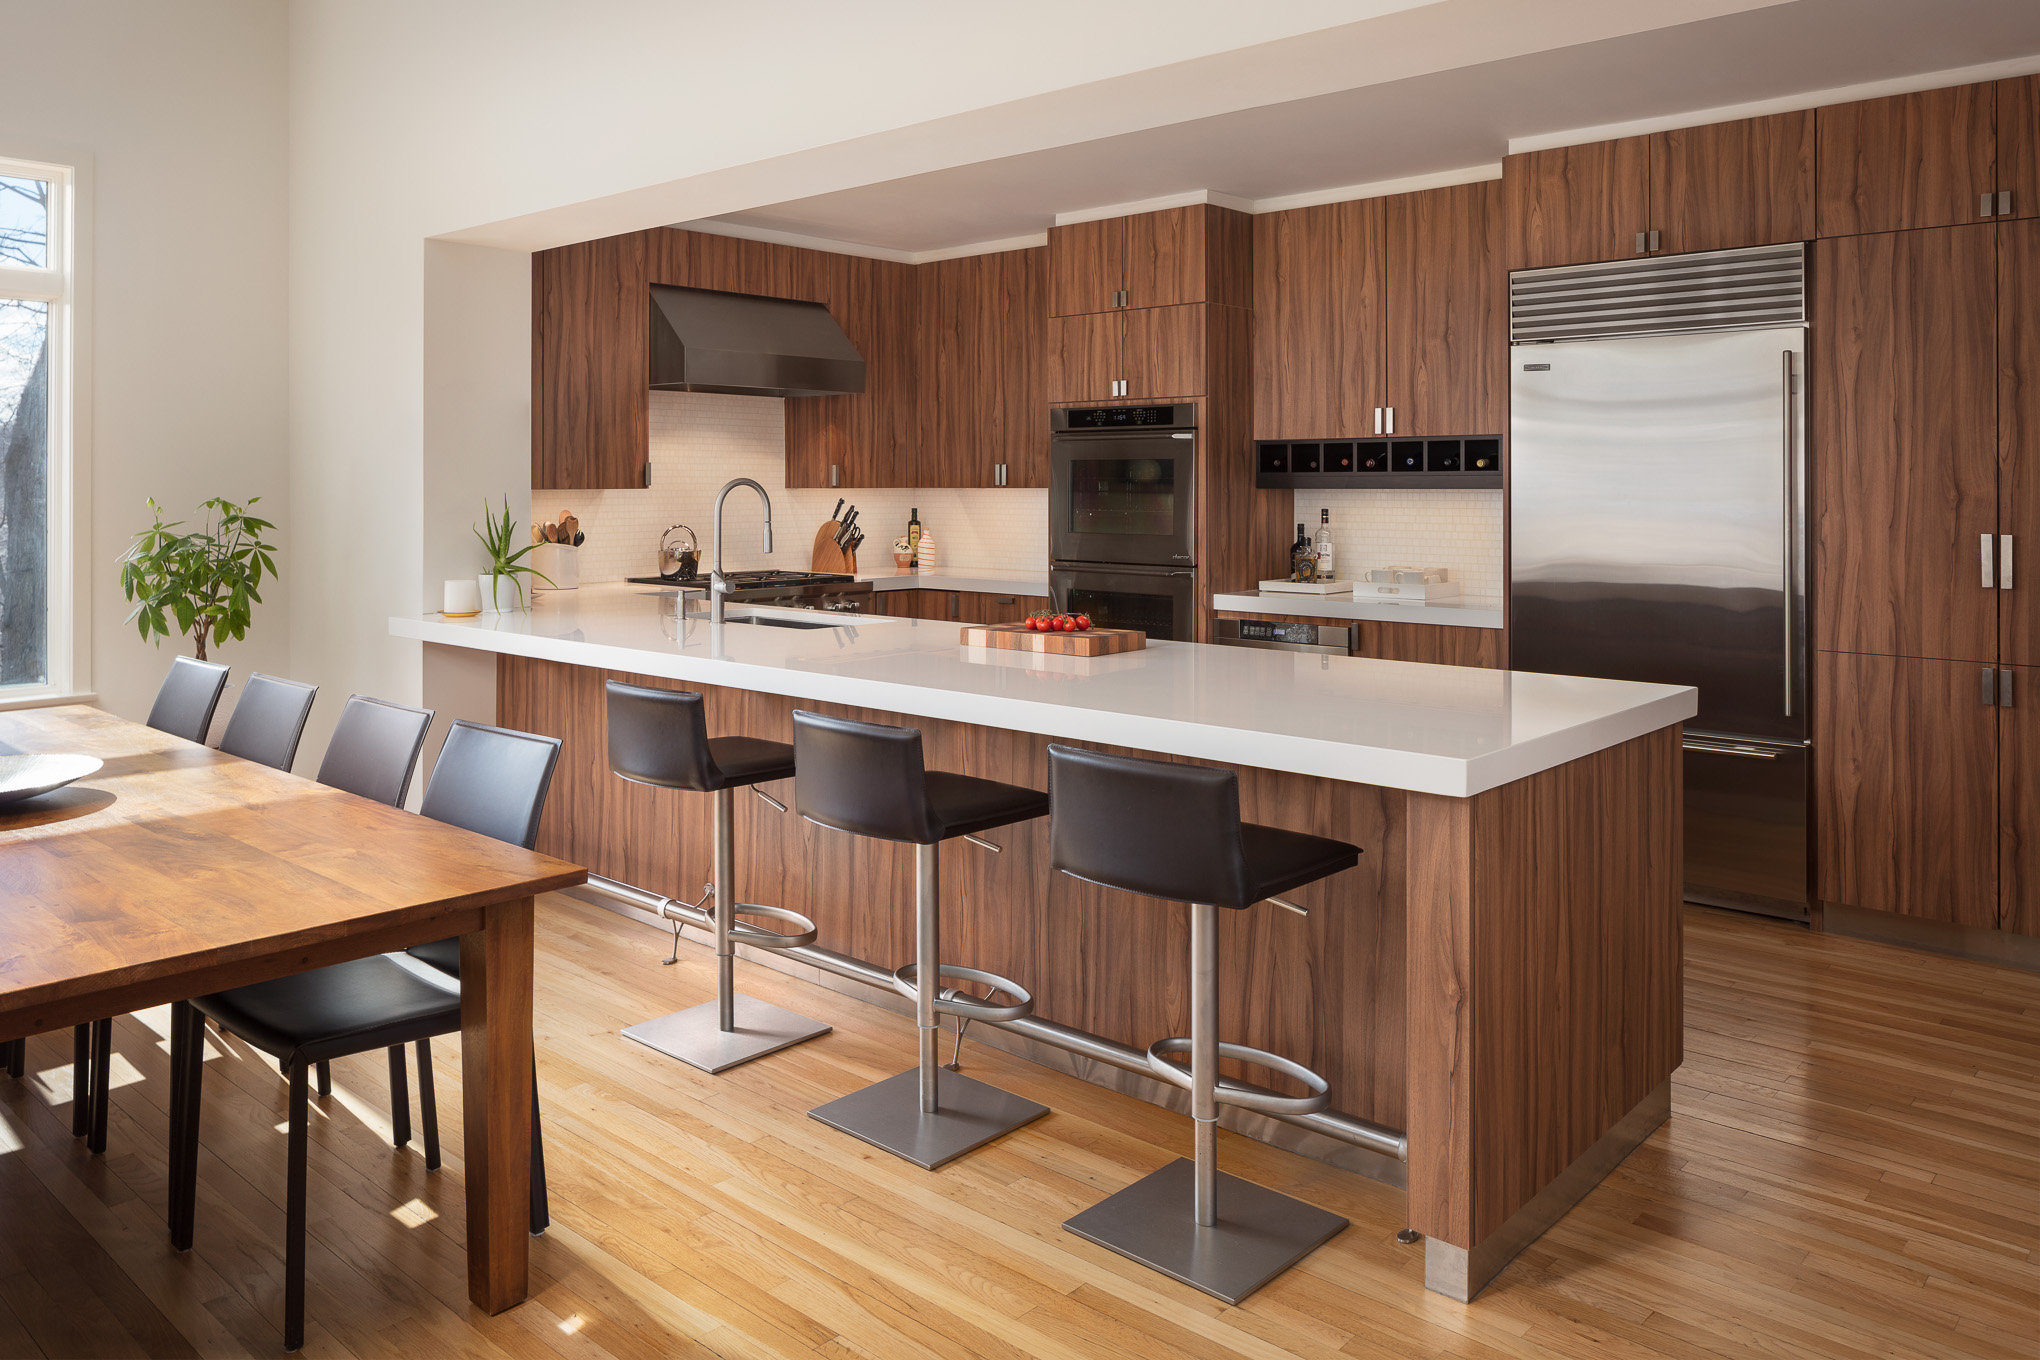 Private Residence, Hastings NY, Design by NLM Design Interiors